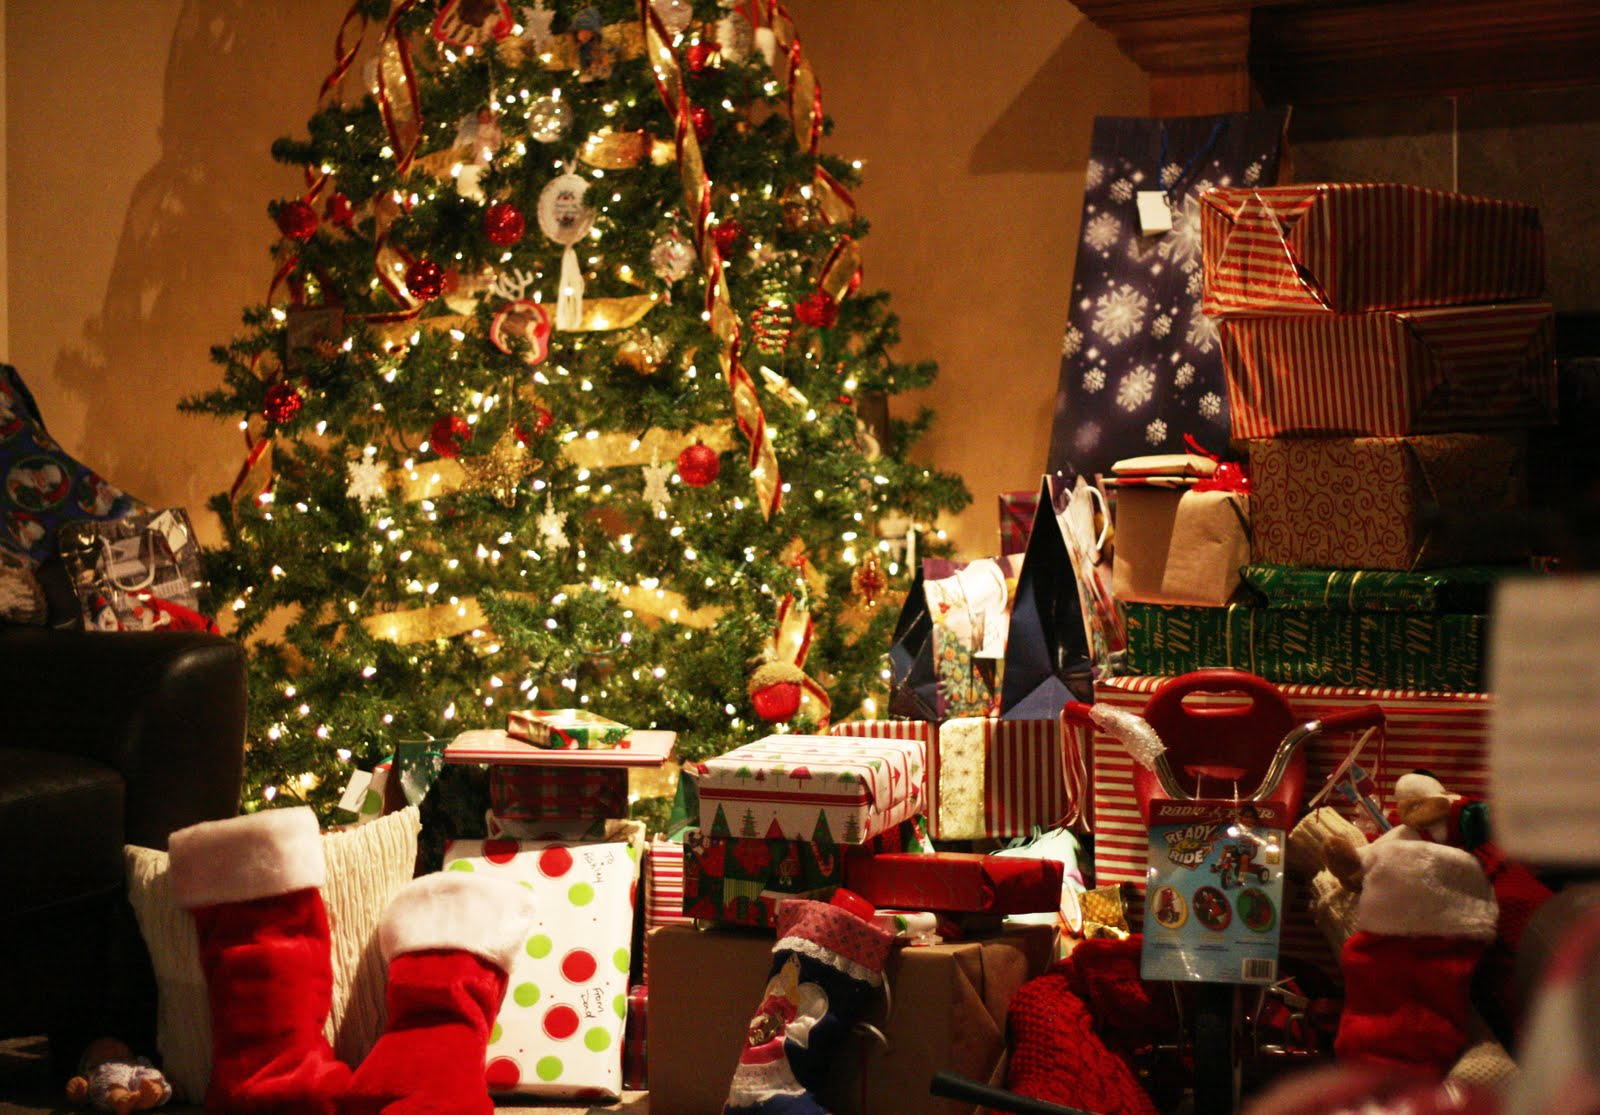 Attractive homemade merry christmas gift ideas 2017 for dad and merry christmas day gift ideas 2017 negle Image collections